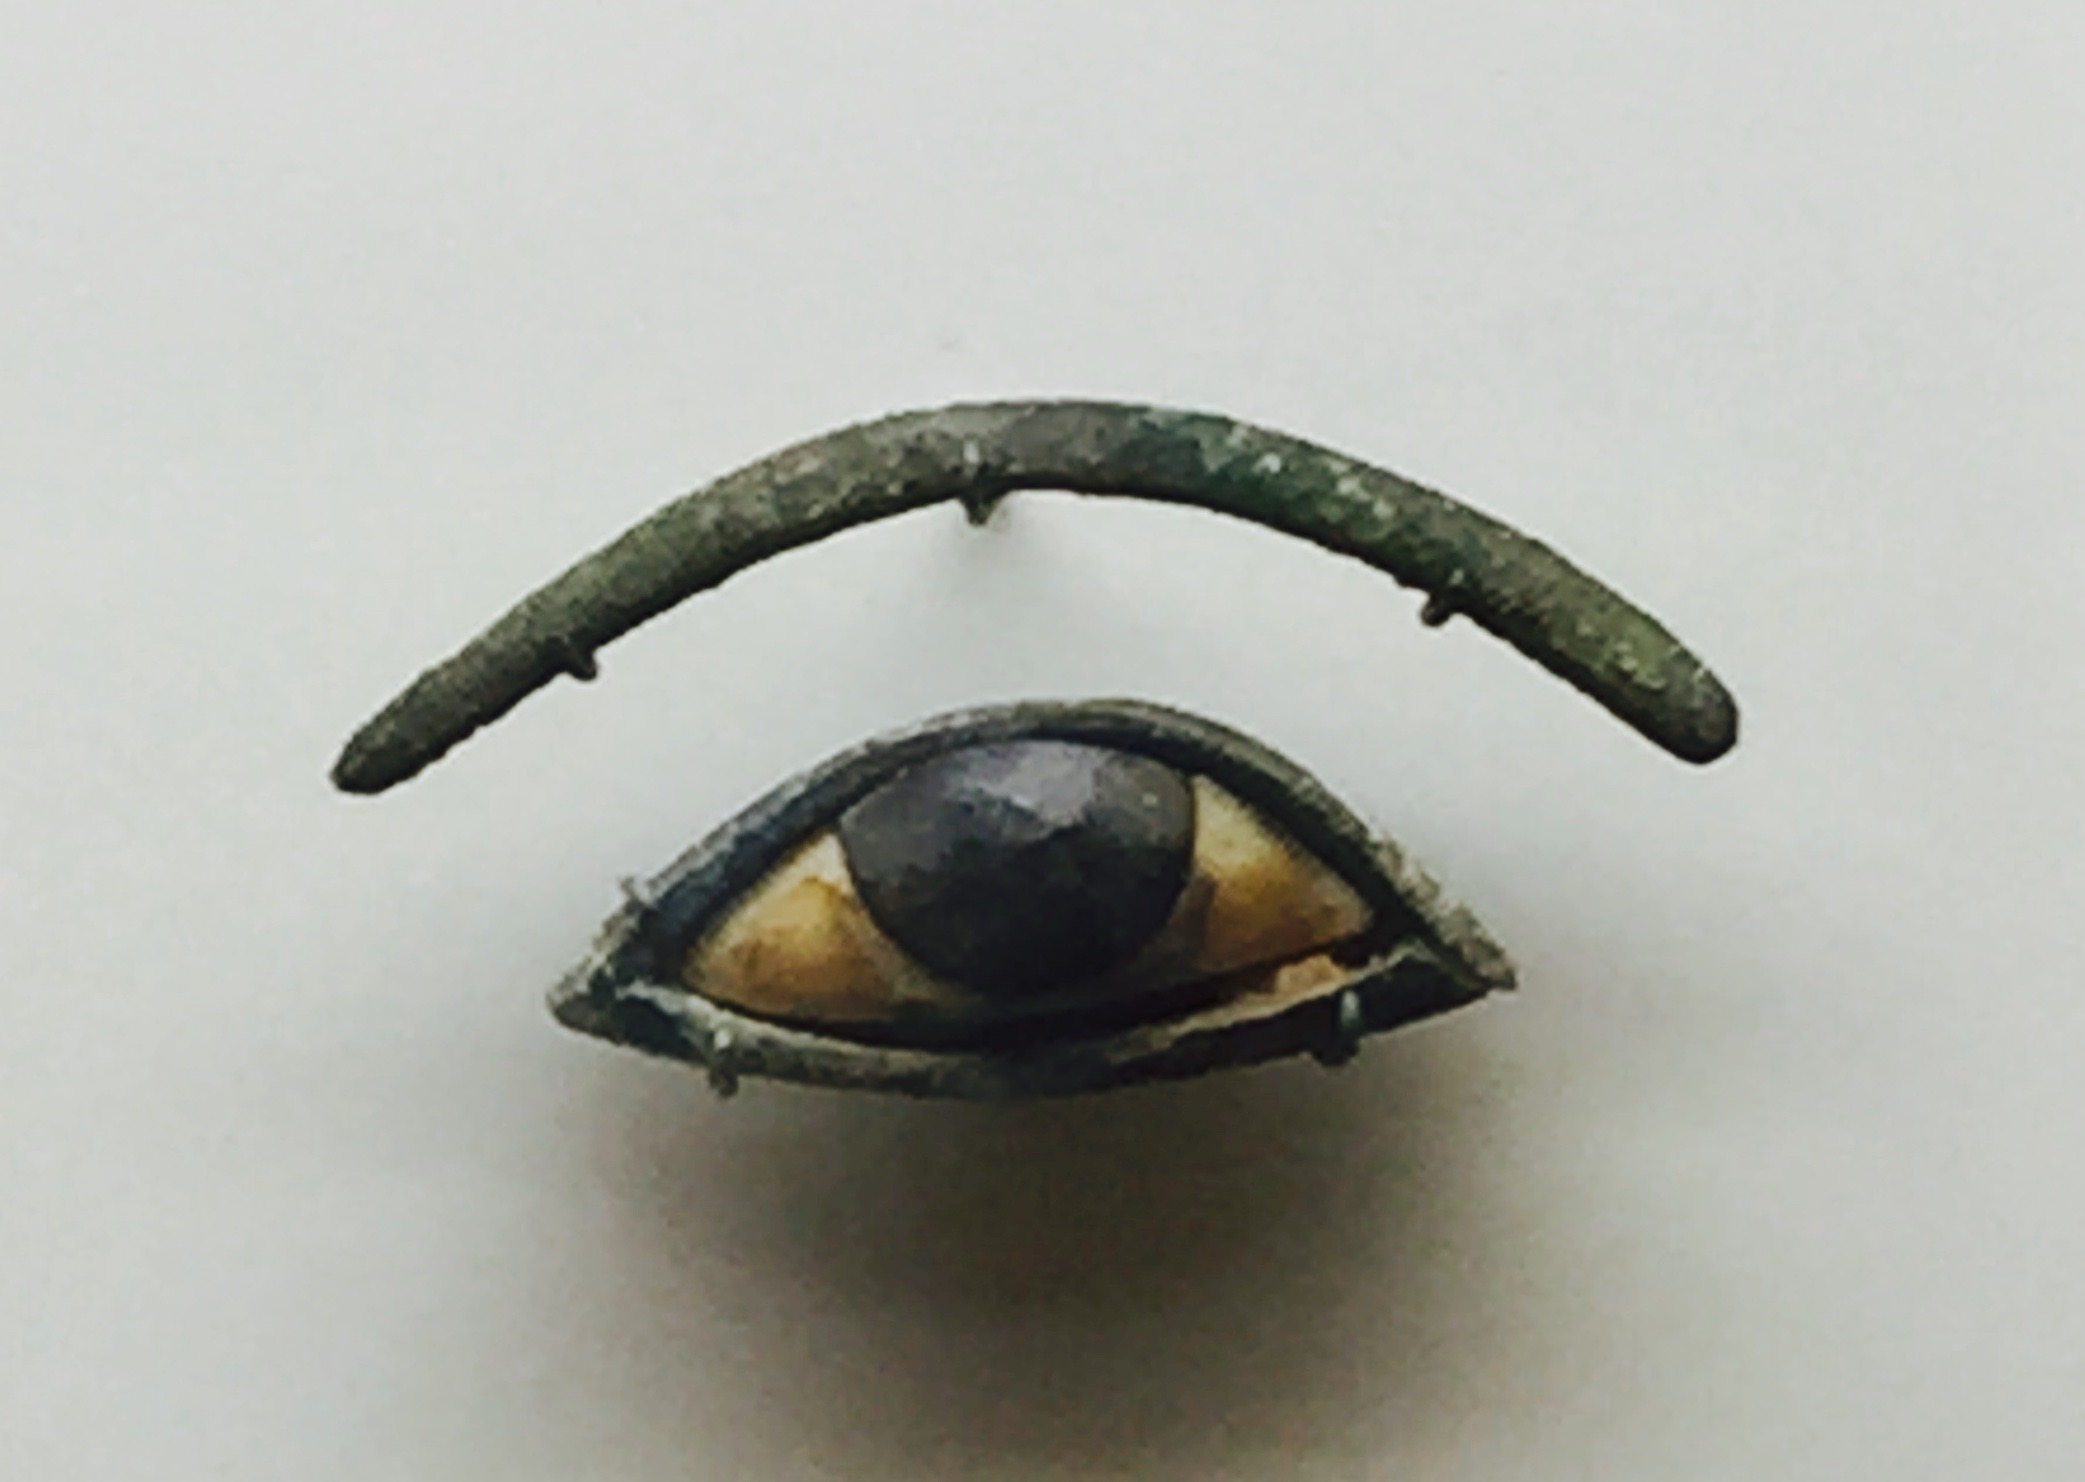 Eye and Eyebrow inlays. 1293 to 715 BCE. Ivory, Obsidian and the eyebrow is bronze.